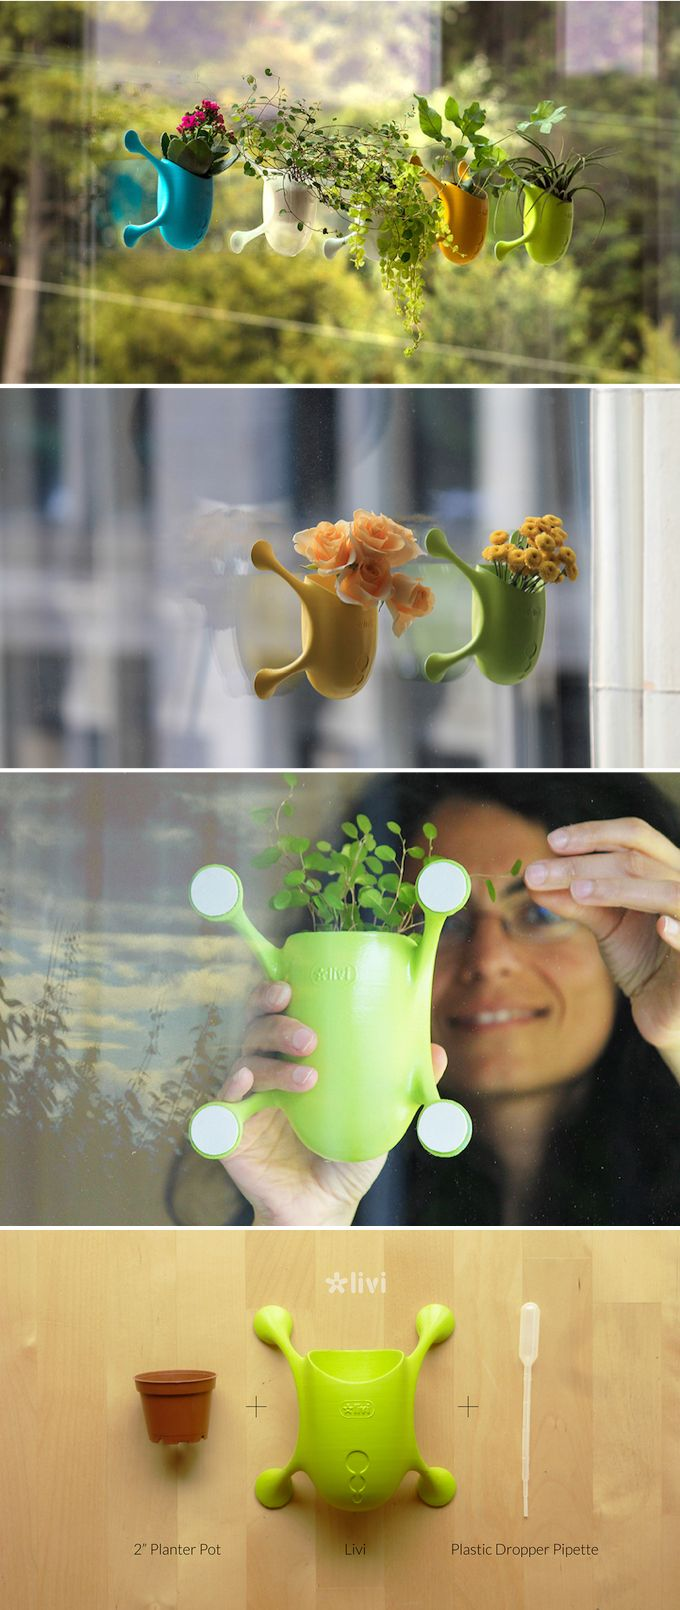 Quirky Suction Cup Planters Let You Grow a Garden on Your Window